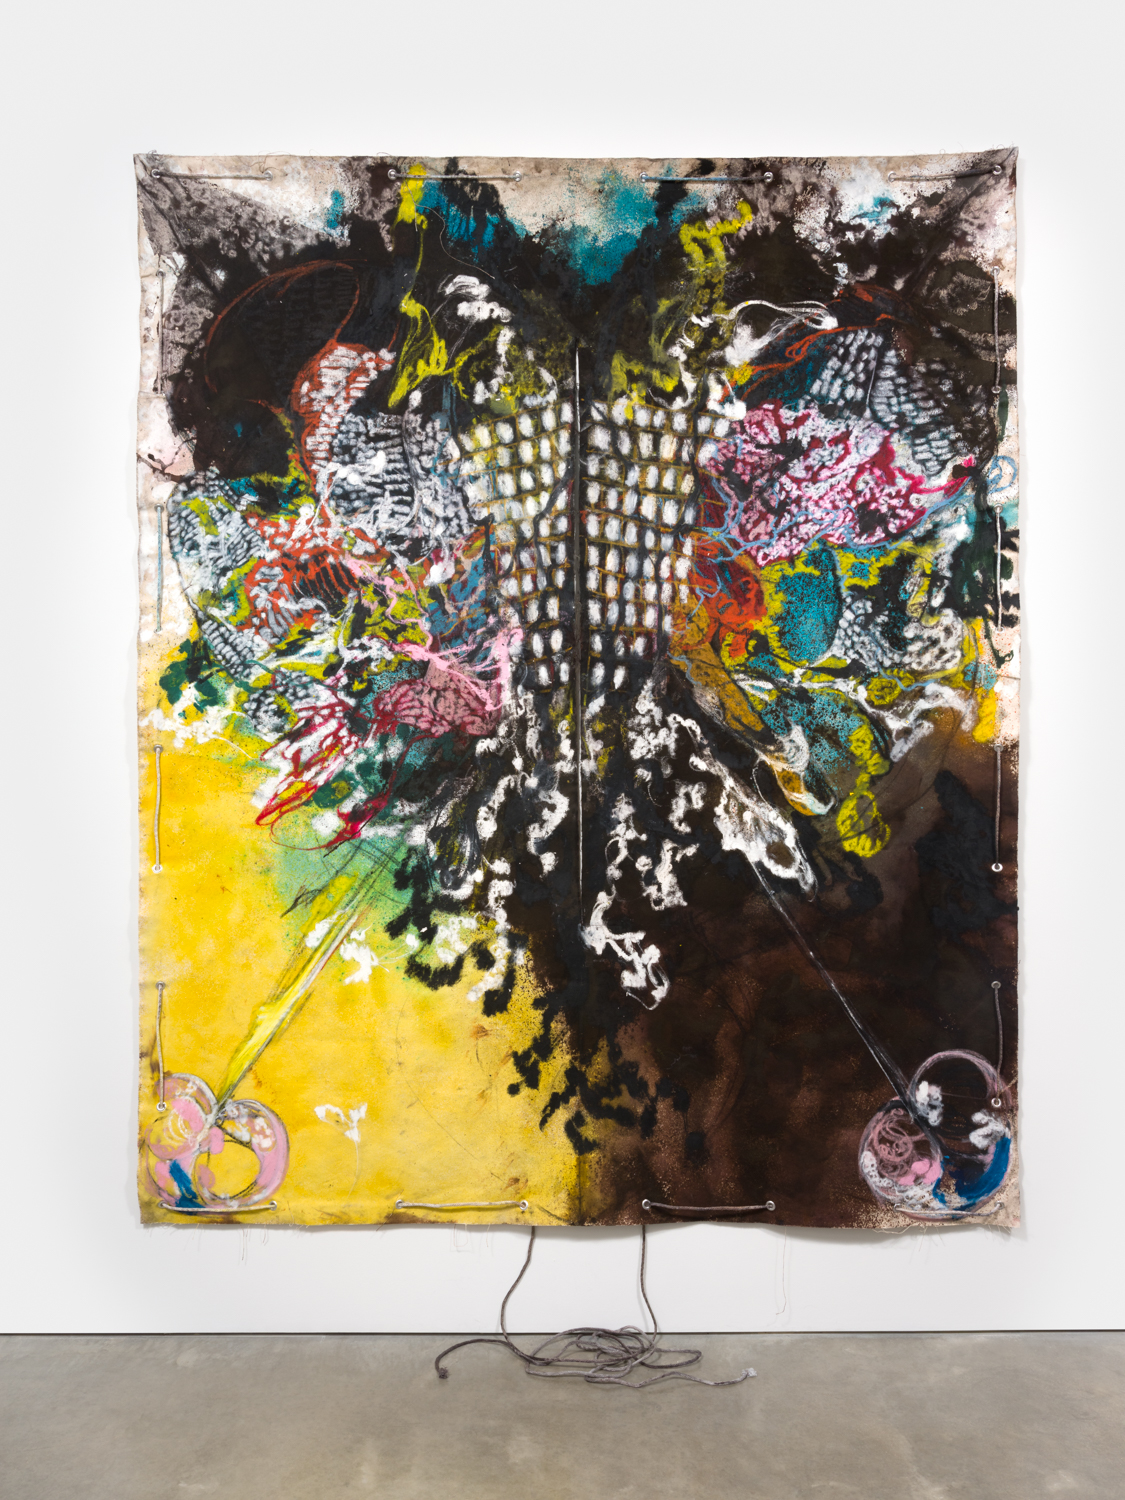 NaotakaHiro  Untitled (Morph)  2018 Canvas, fabric dye, oil pastel, rope and grommets 108h x 84w in NaoH034